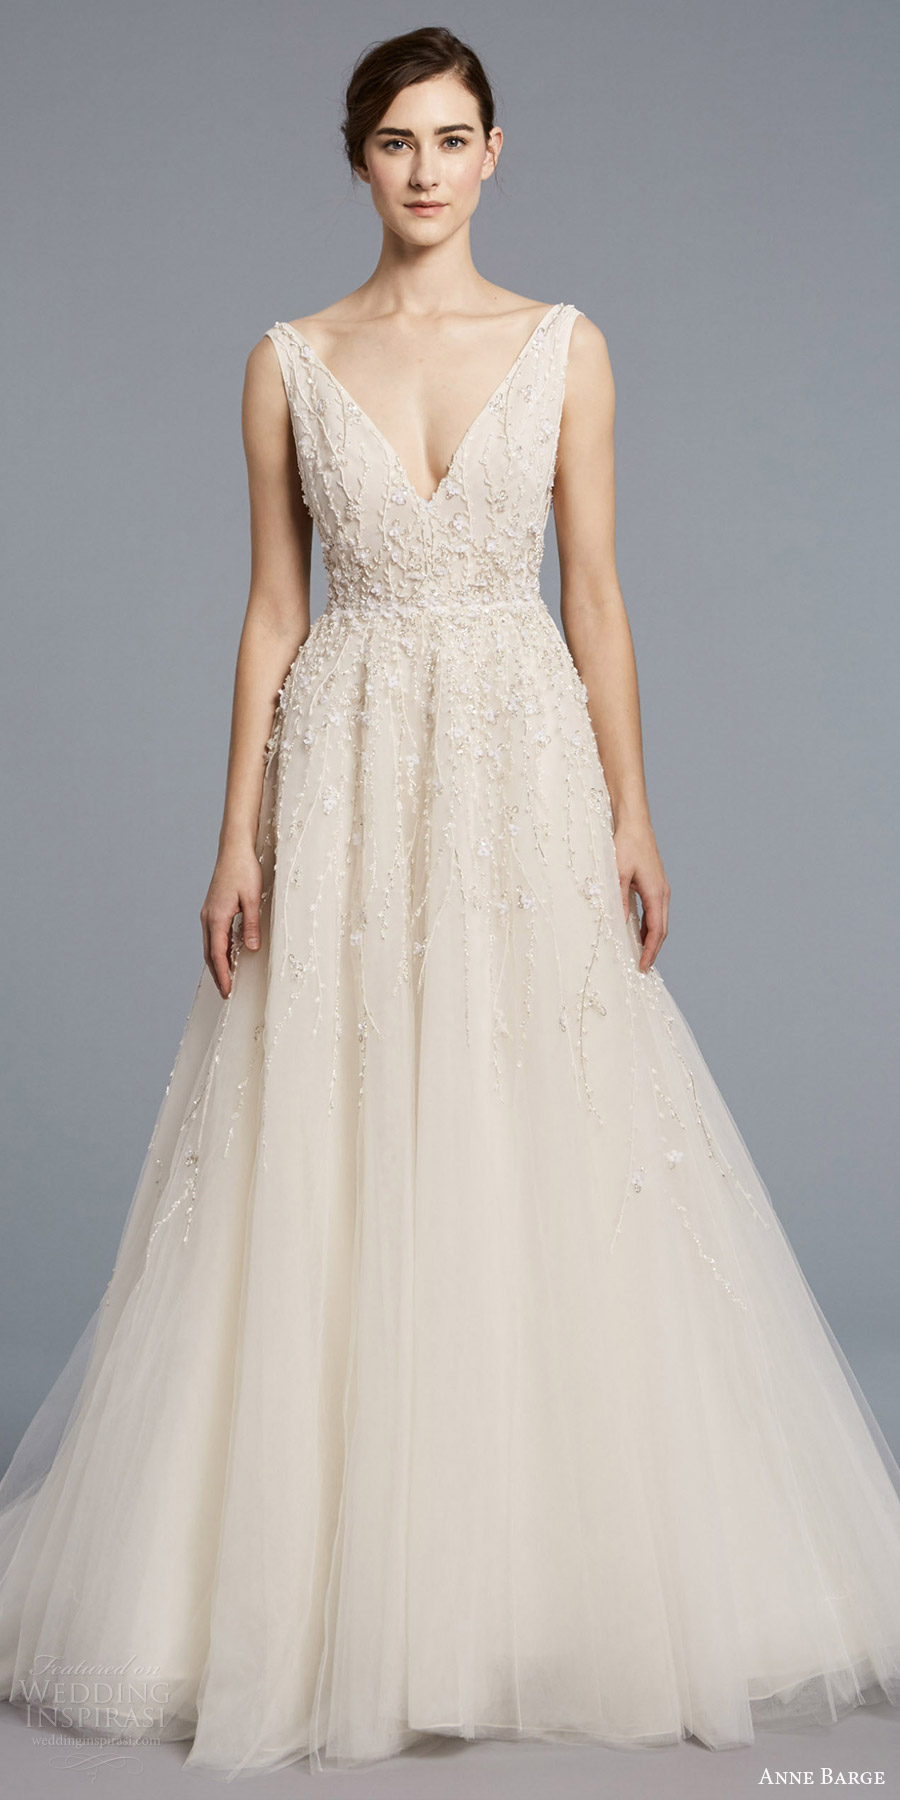 Anne Barge Spring 2018 Wedding Dresses — New York Bridal ...